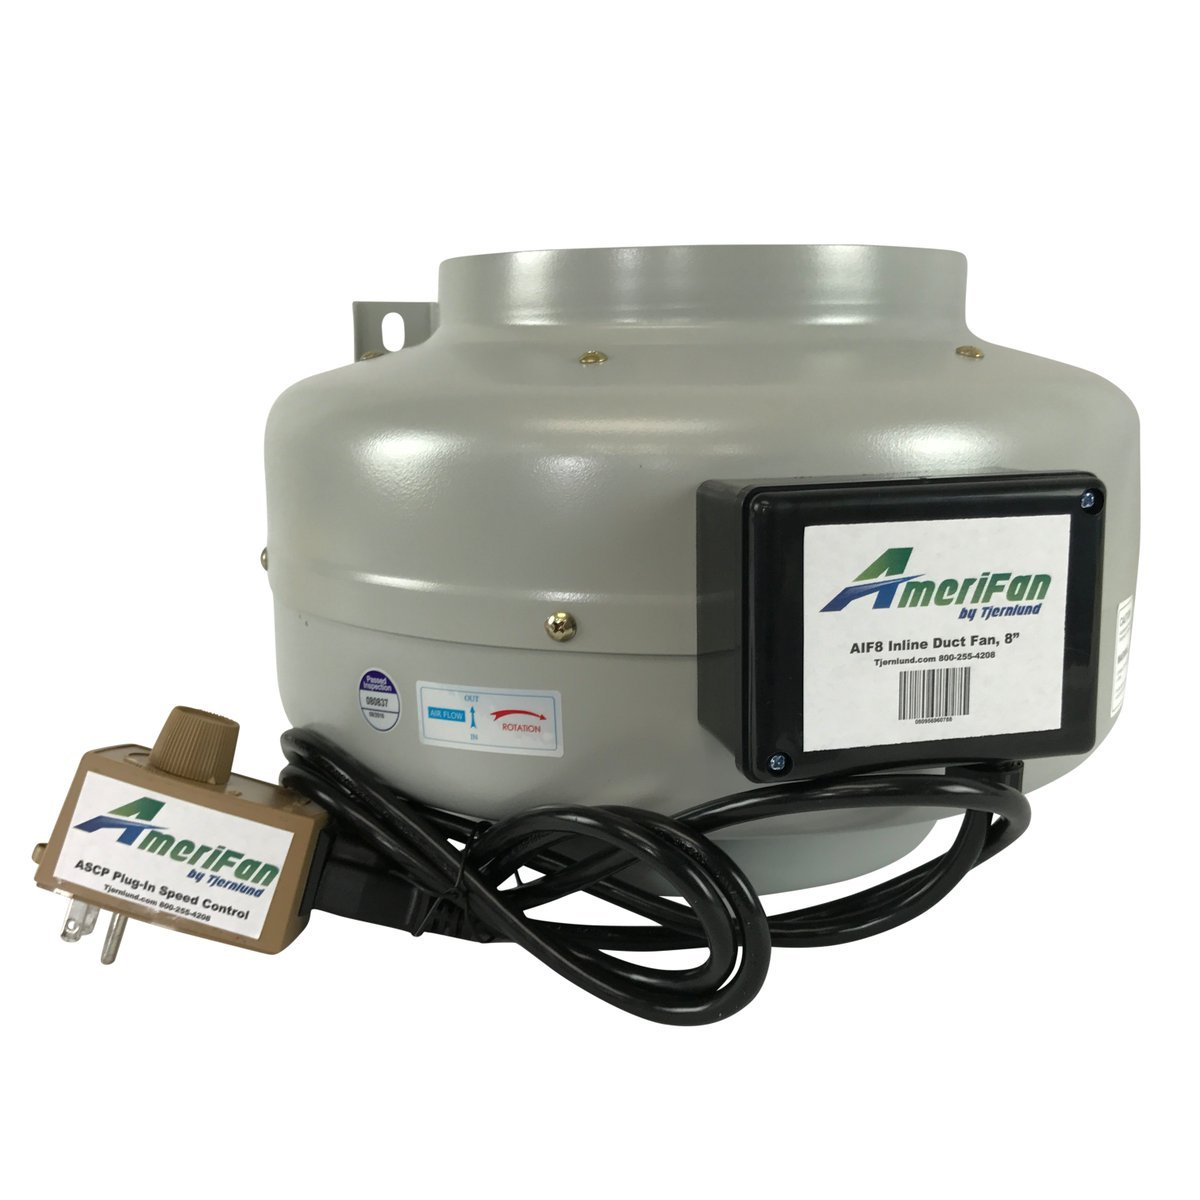 AmeriFan AIF8S Duct Booster with Speed Control, Exhaust Fan, 720 CFM, 8'', for Growing, Hydroponics, Heating, Venting, Cooling by Tjernlund, 120V Supply Voltage